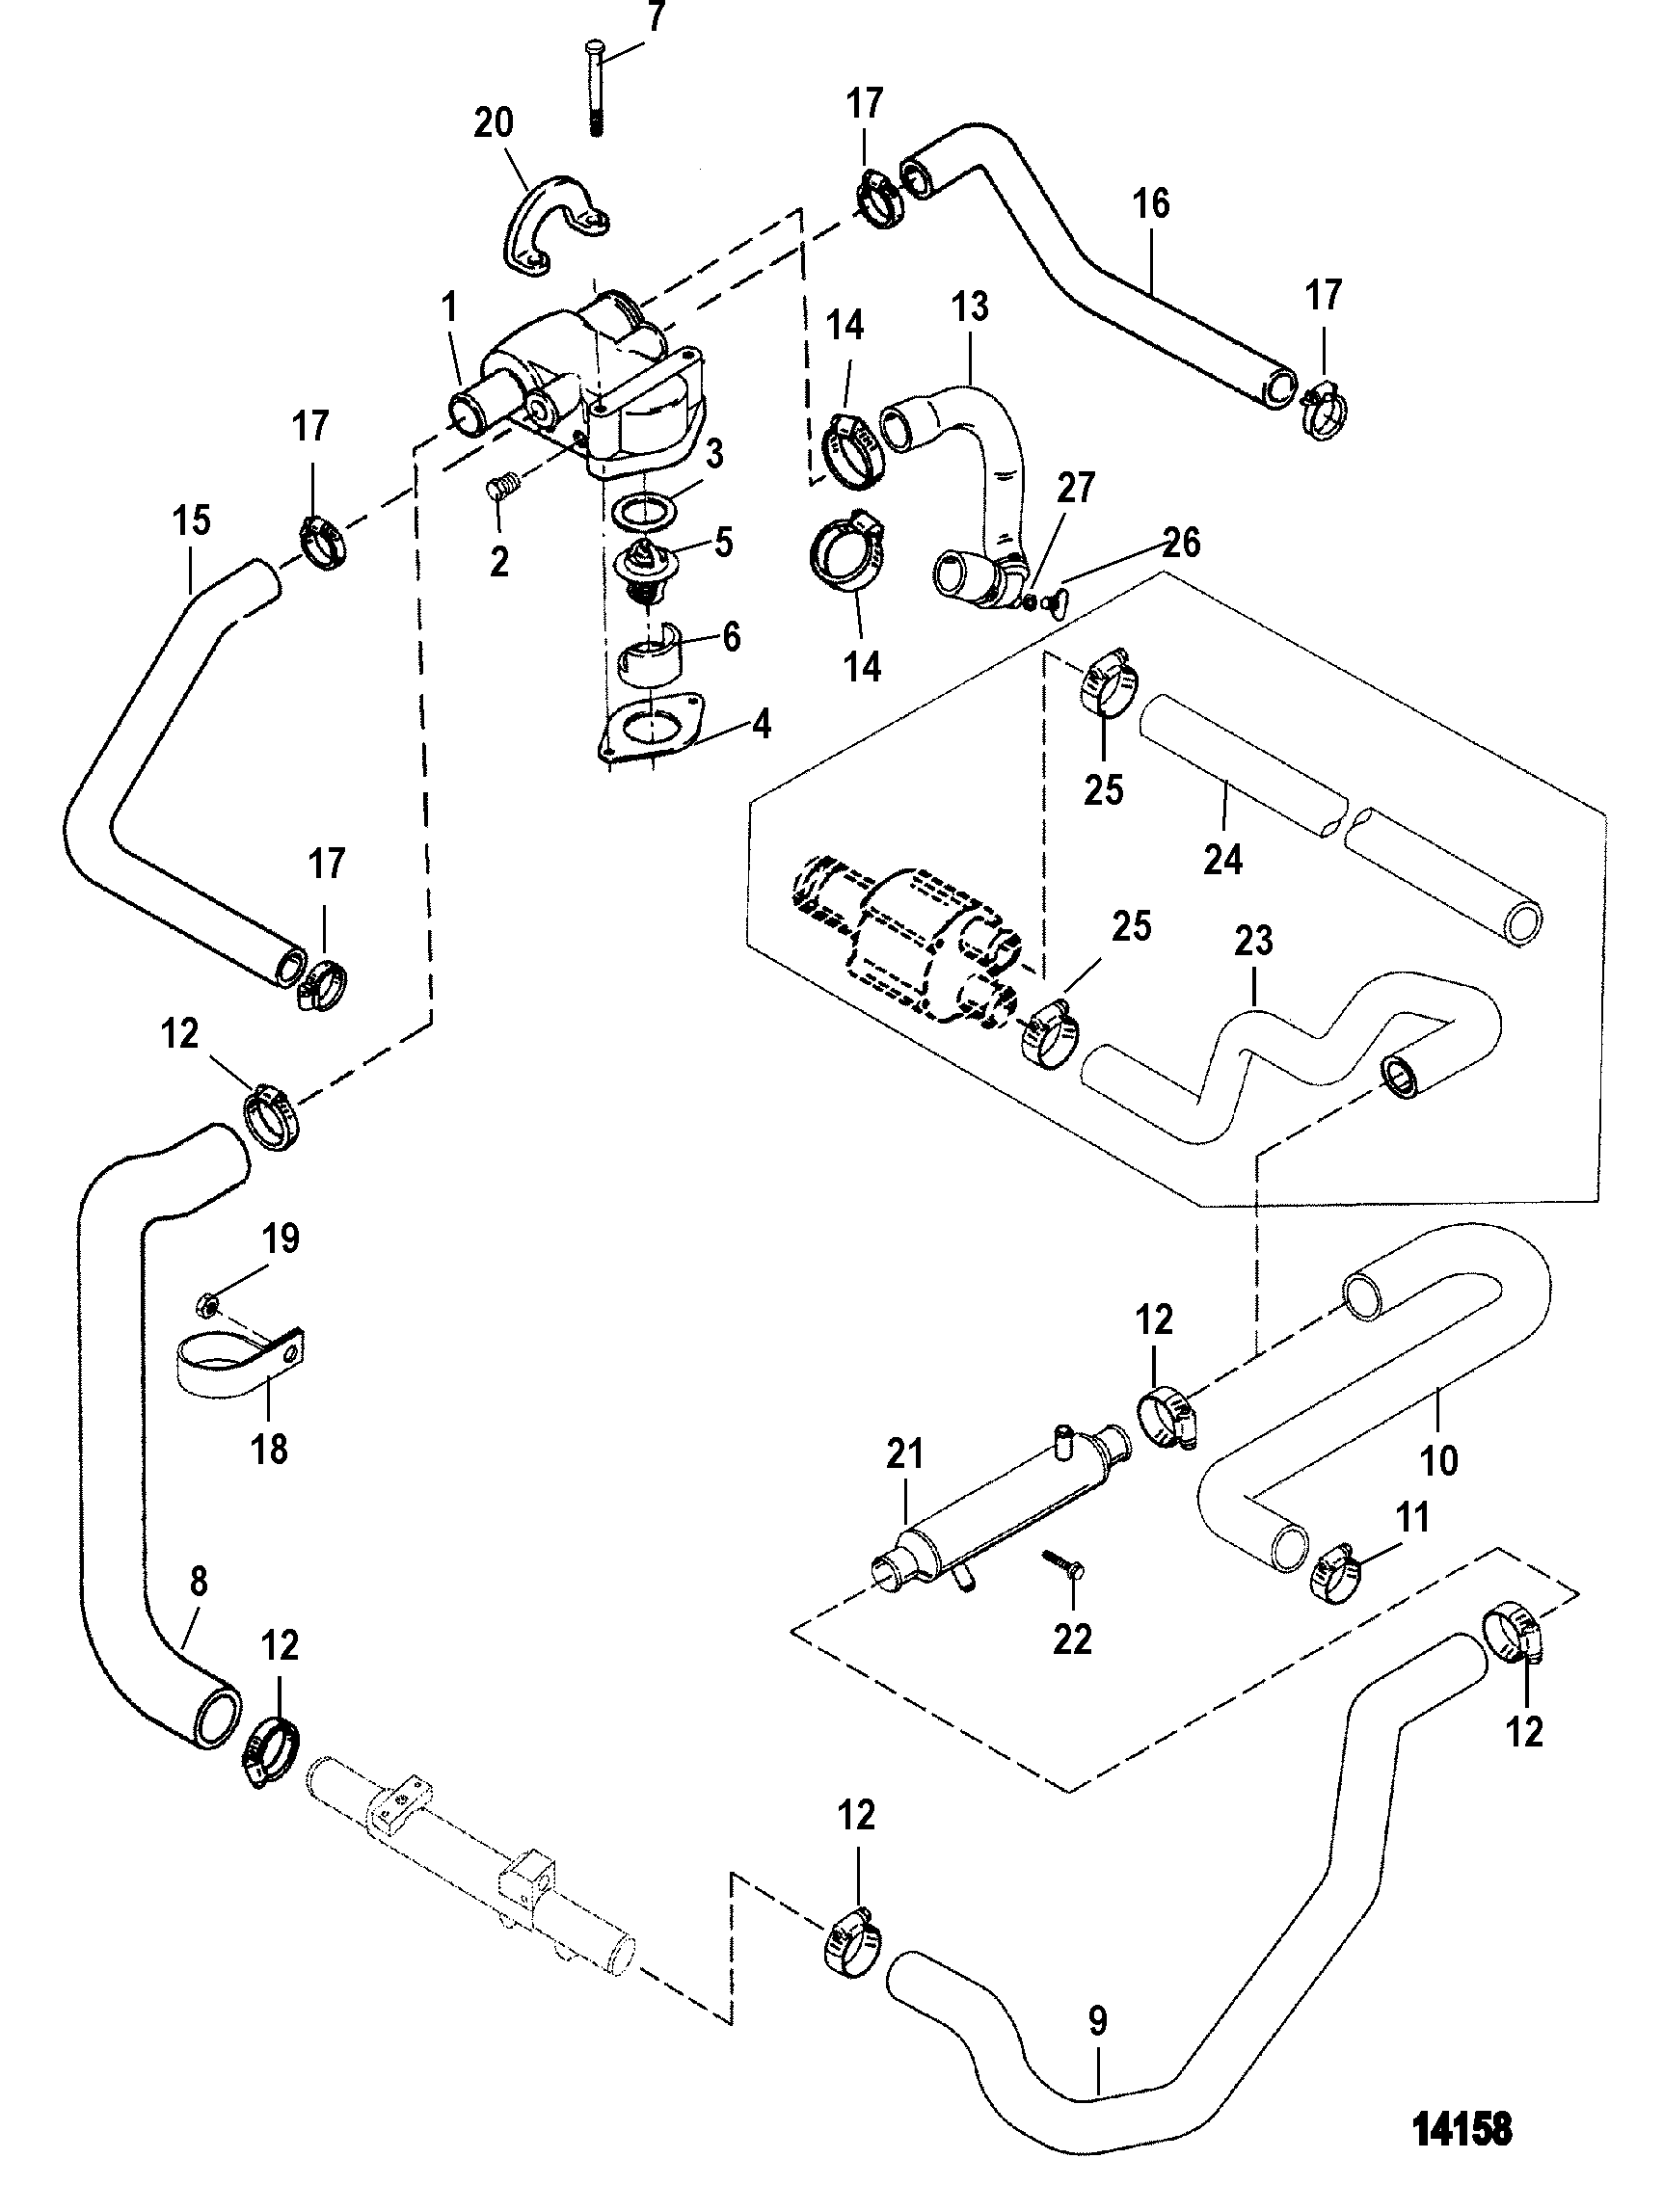 Dodge Ram 1500 Hemi 5 7 Engine Diagram on 2001 chrysler town country fuse box diagram